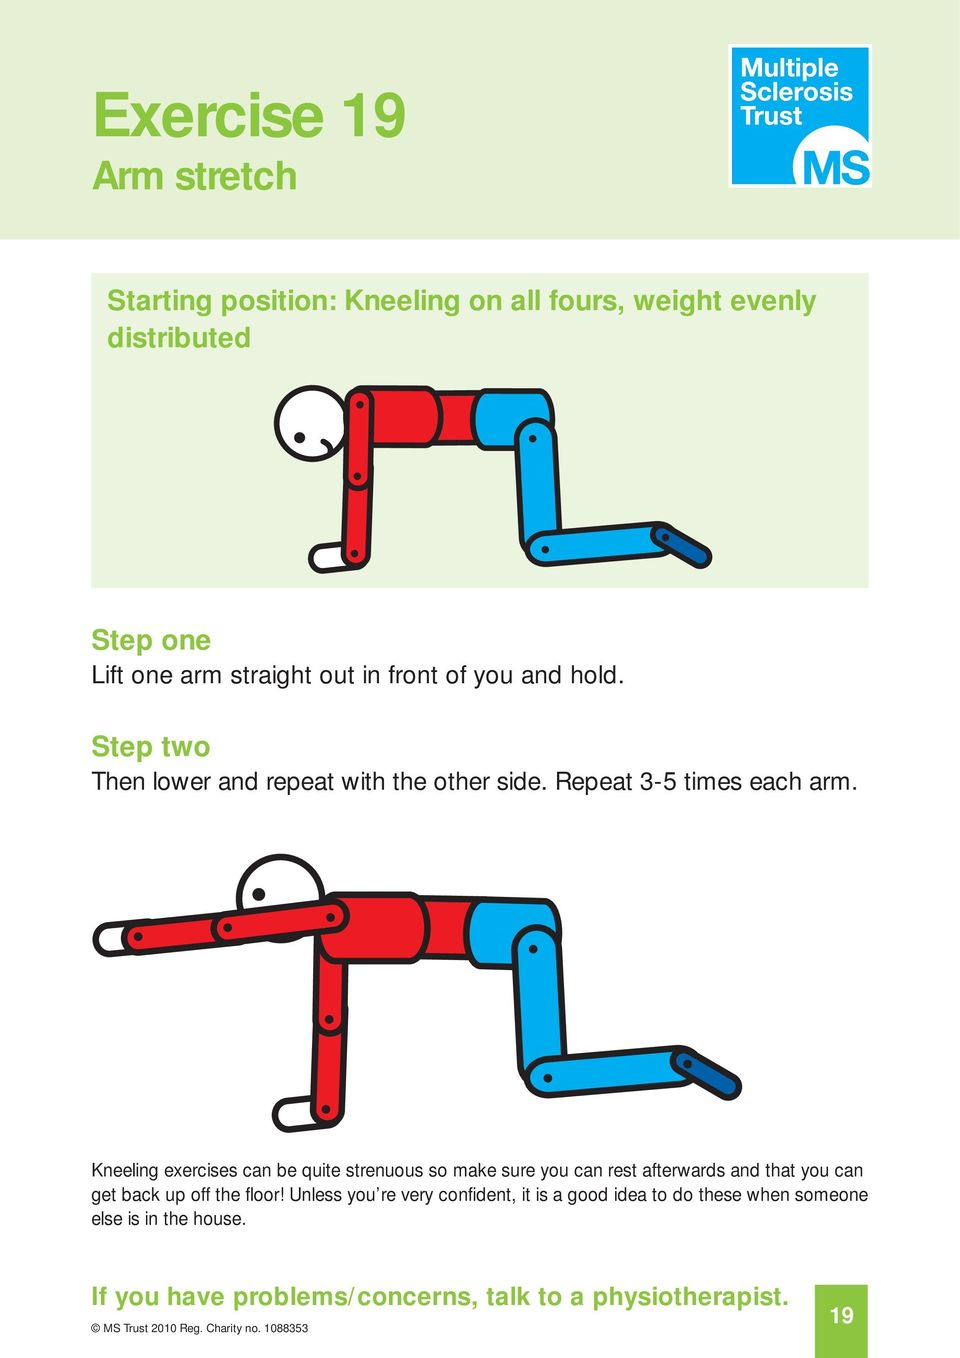 Kneeling exercises can be quite strenuous so make sure you can rest afterwards and that you can get back up